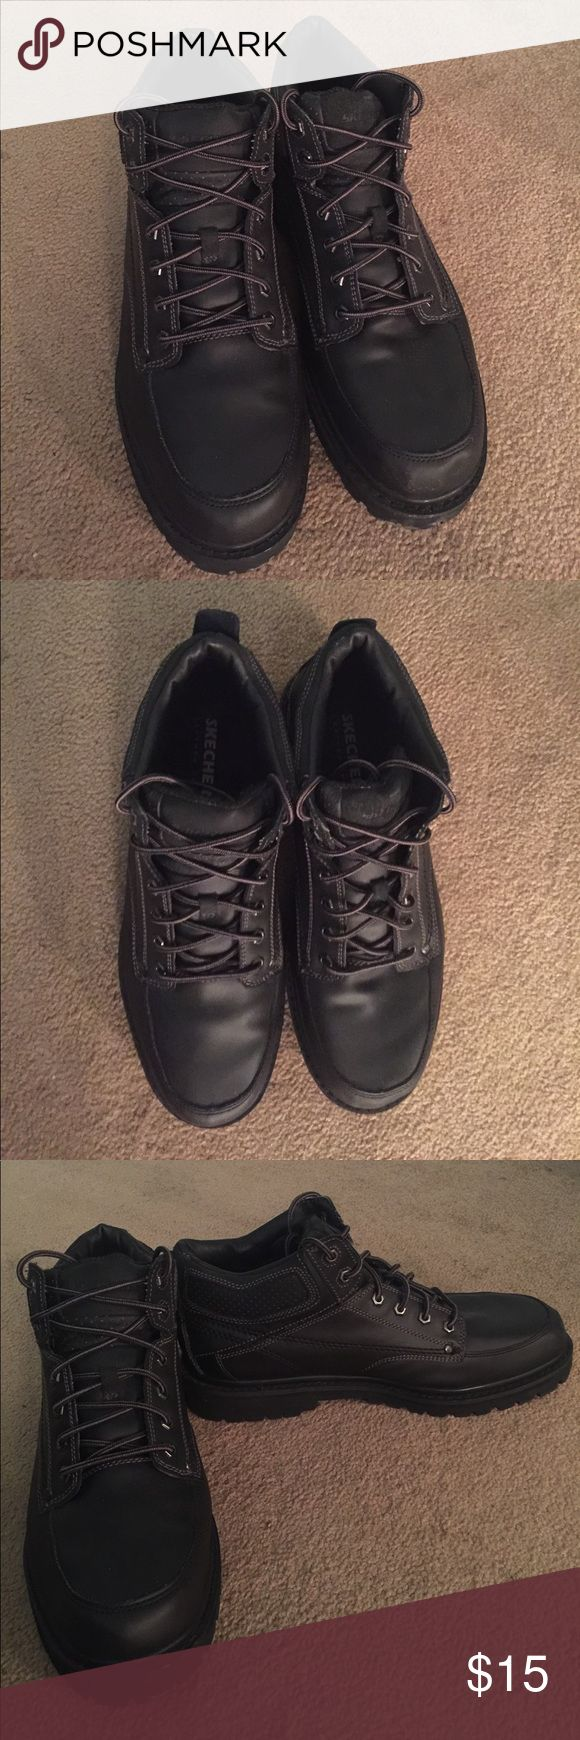 Black Leather Upper SKECHERS Work Booys, size 12 Black Leather Upper SKECHERS Work Booys, size 12.  Great pre-owned condition.  Coming from a pet and smoke free environment. Skechers Shoes Boots